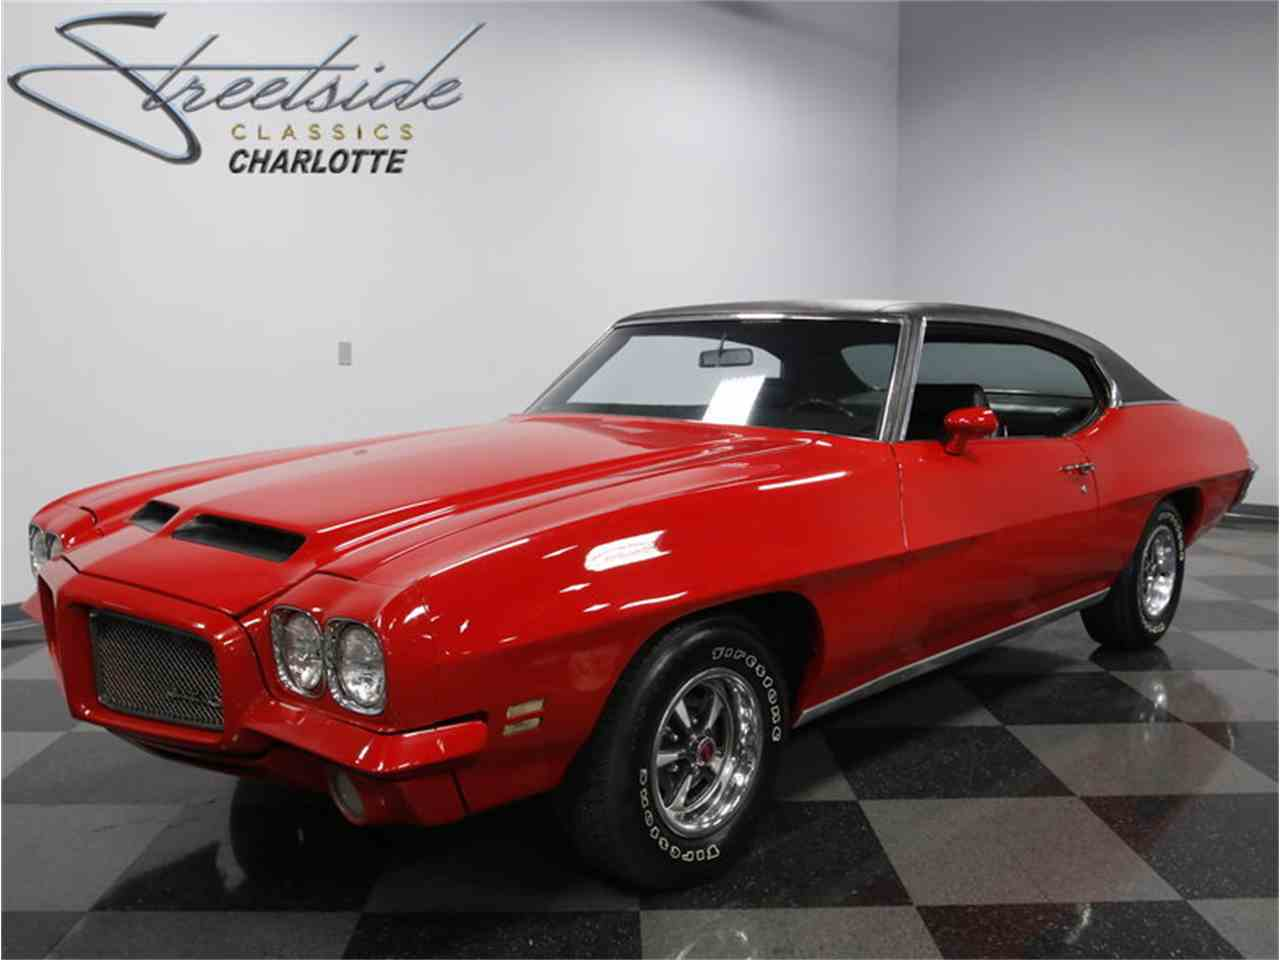 Worksheet. 1971 to 1973 Pontiac GTO for Sale on ClassicCarscom  25 Available